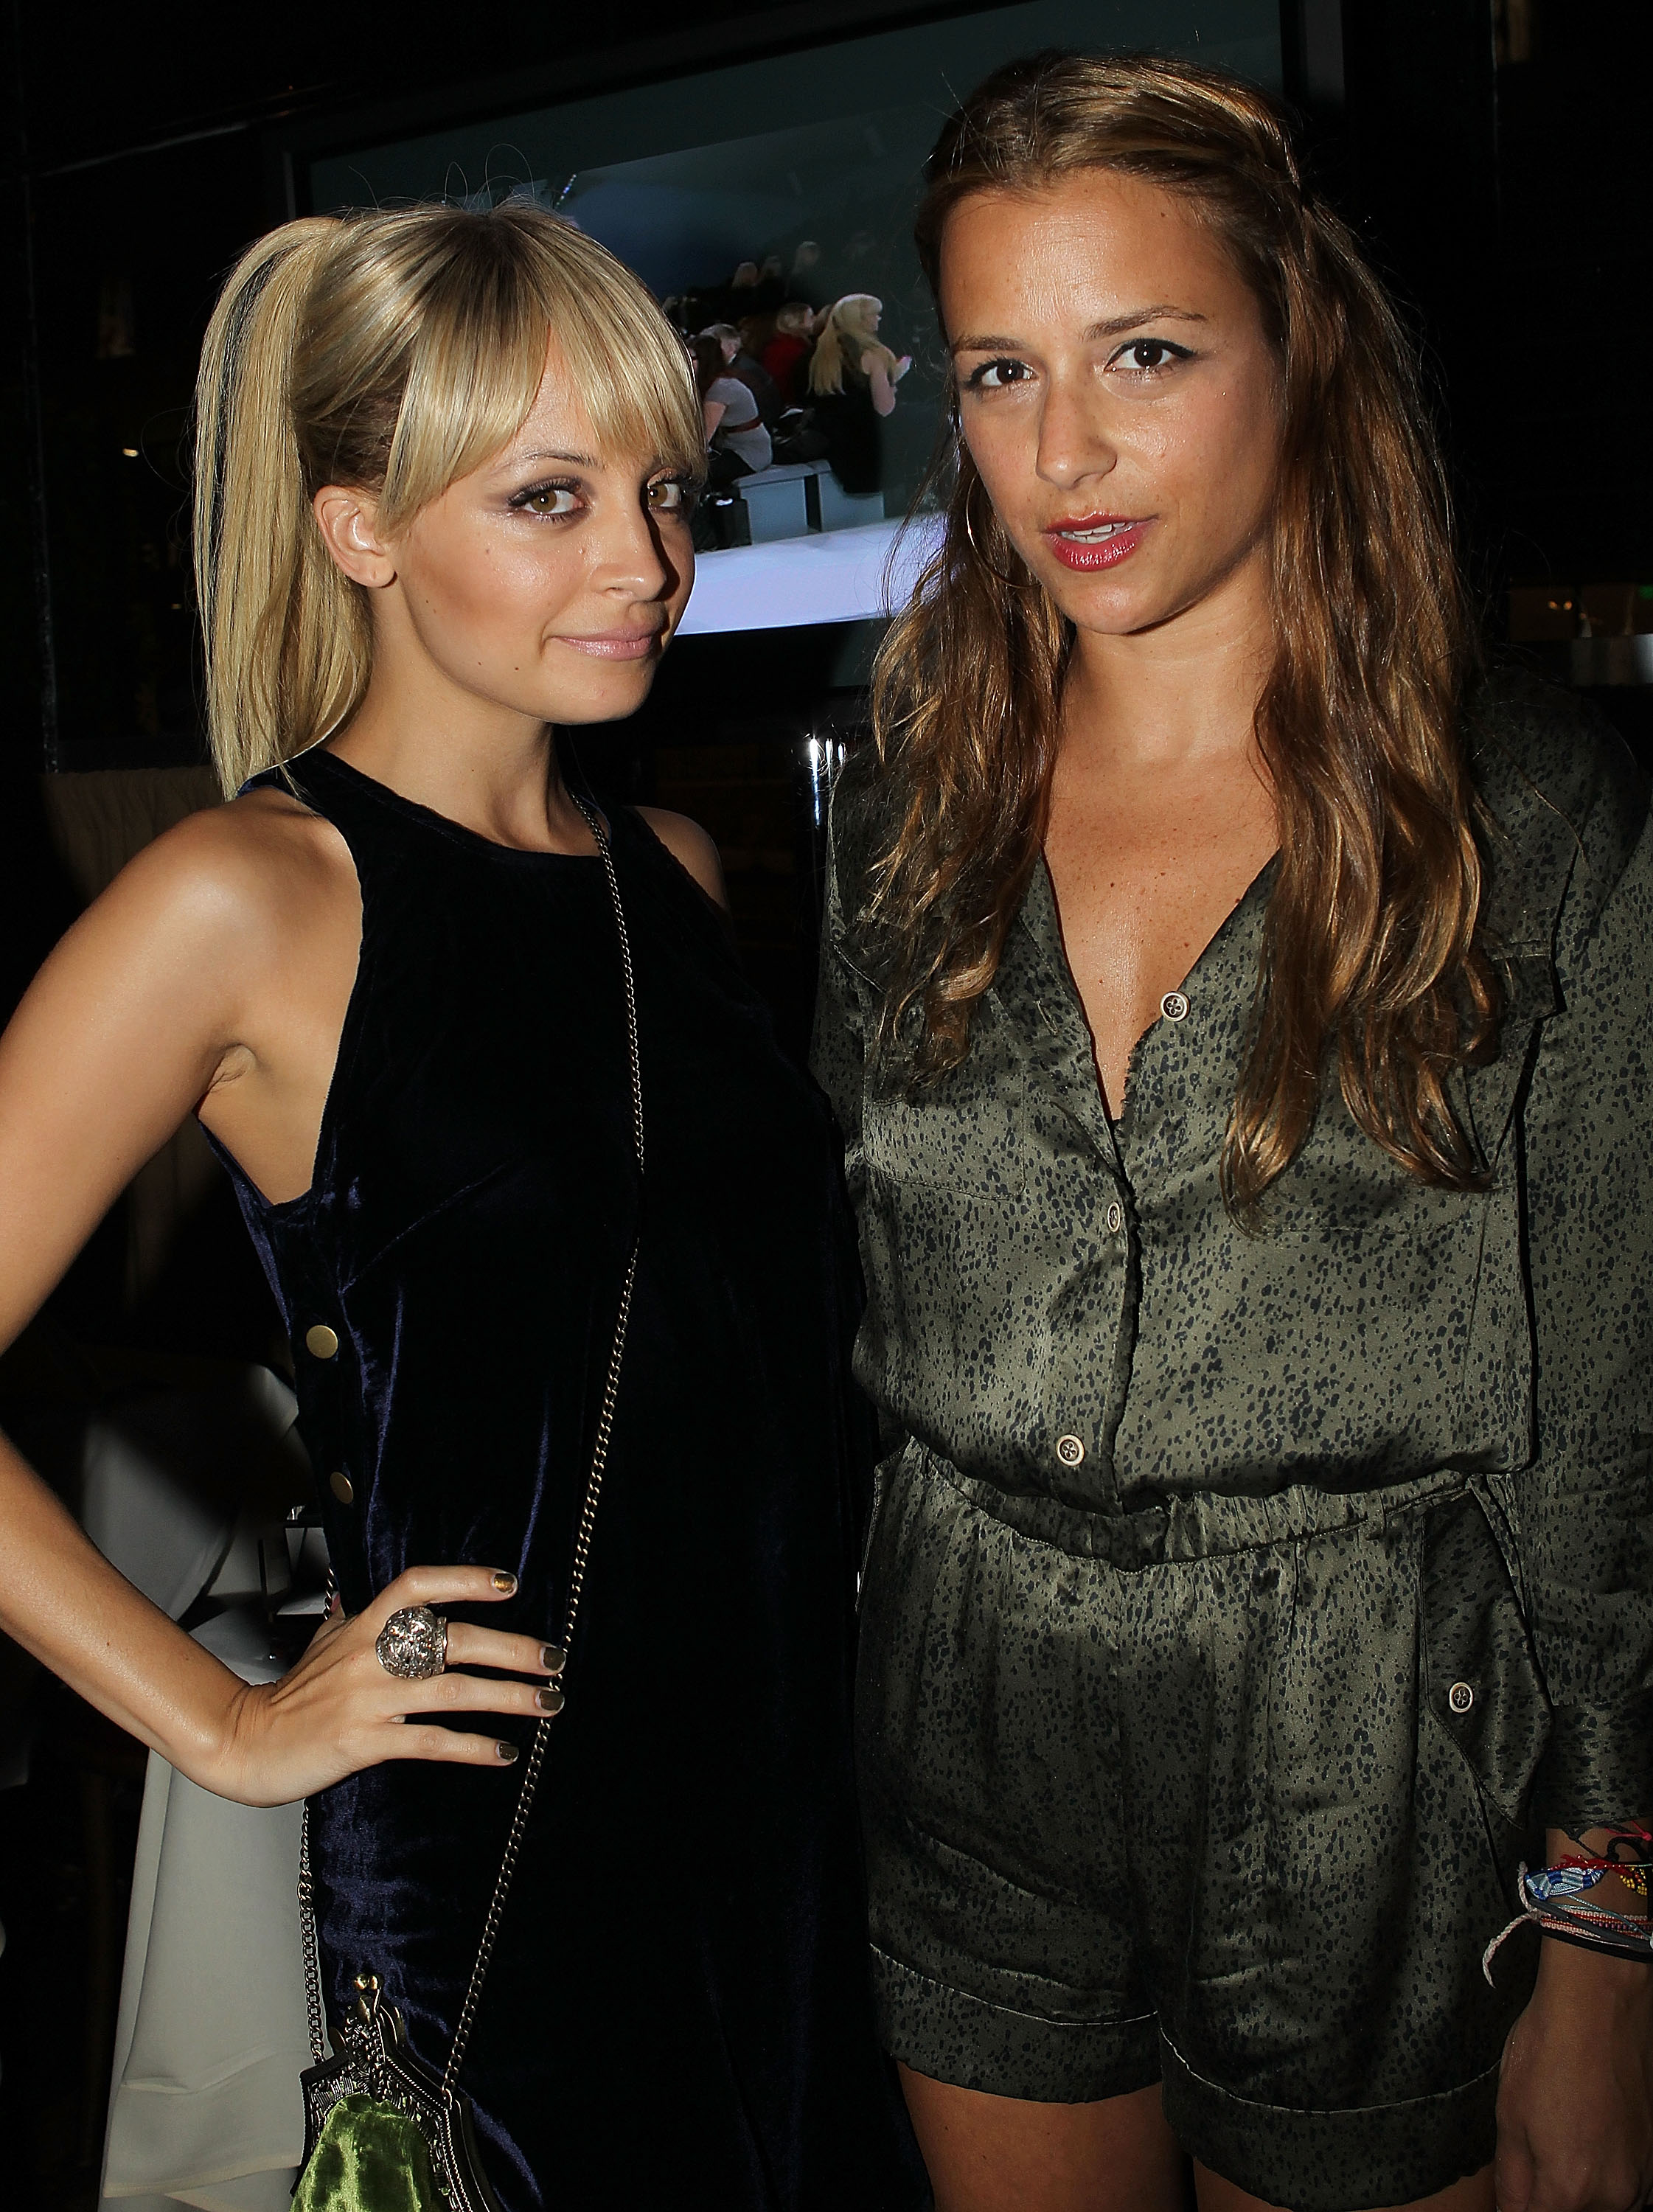 Nicole Richie and Charlotte Ronson shared a moment.